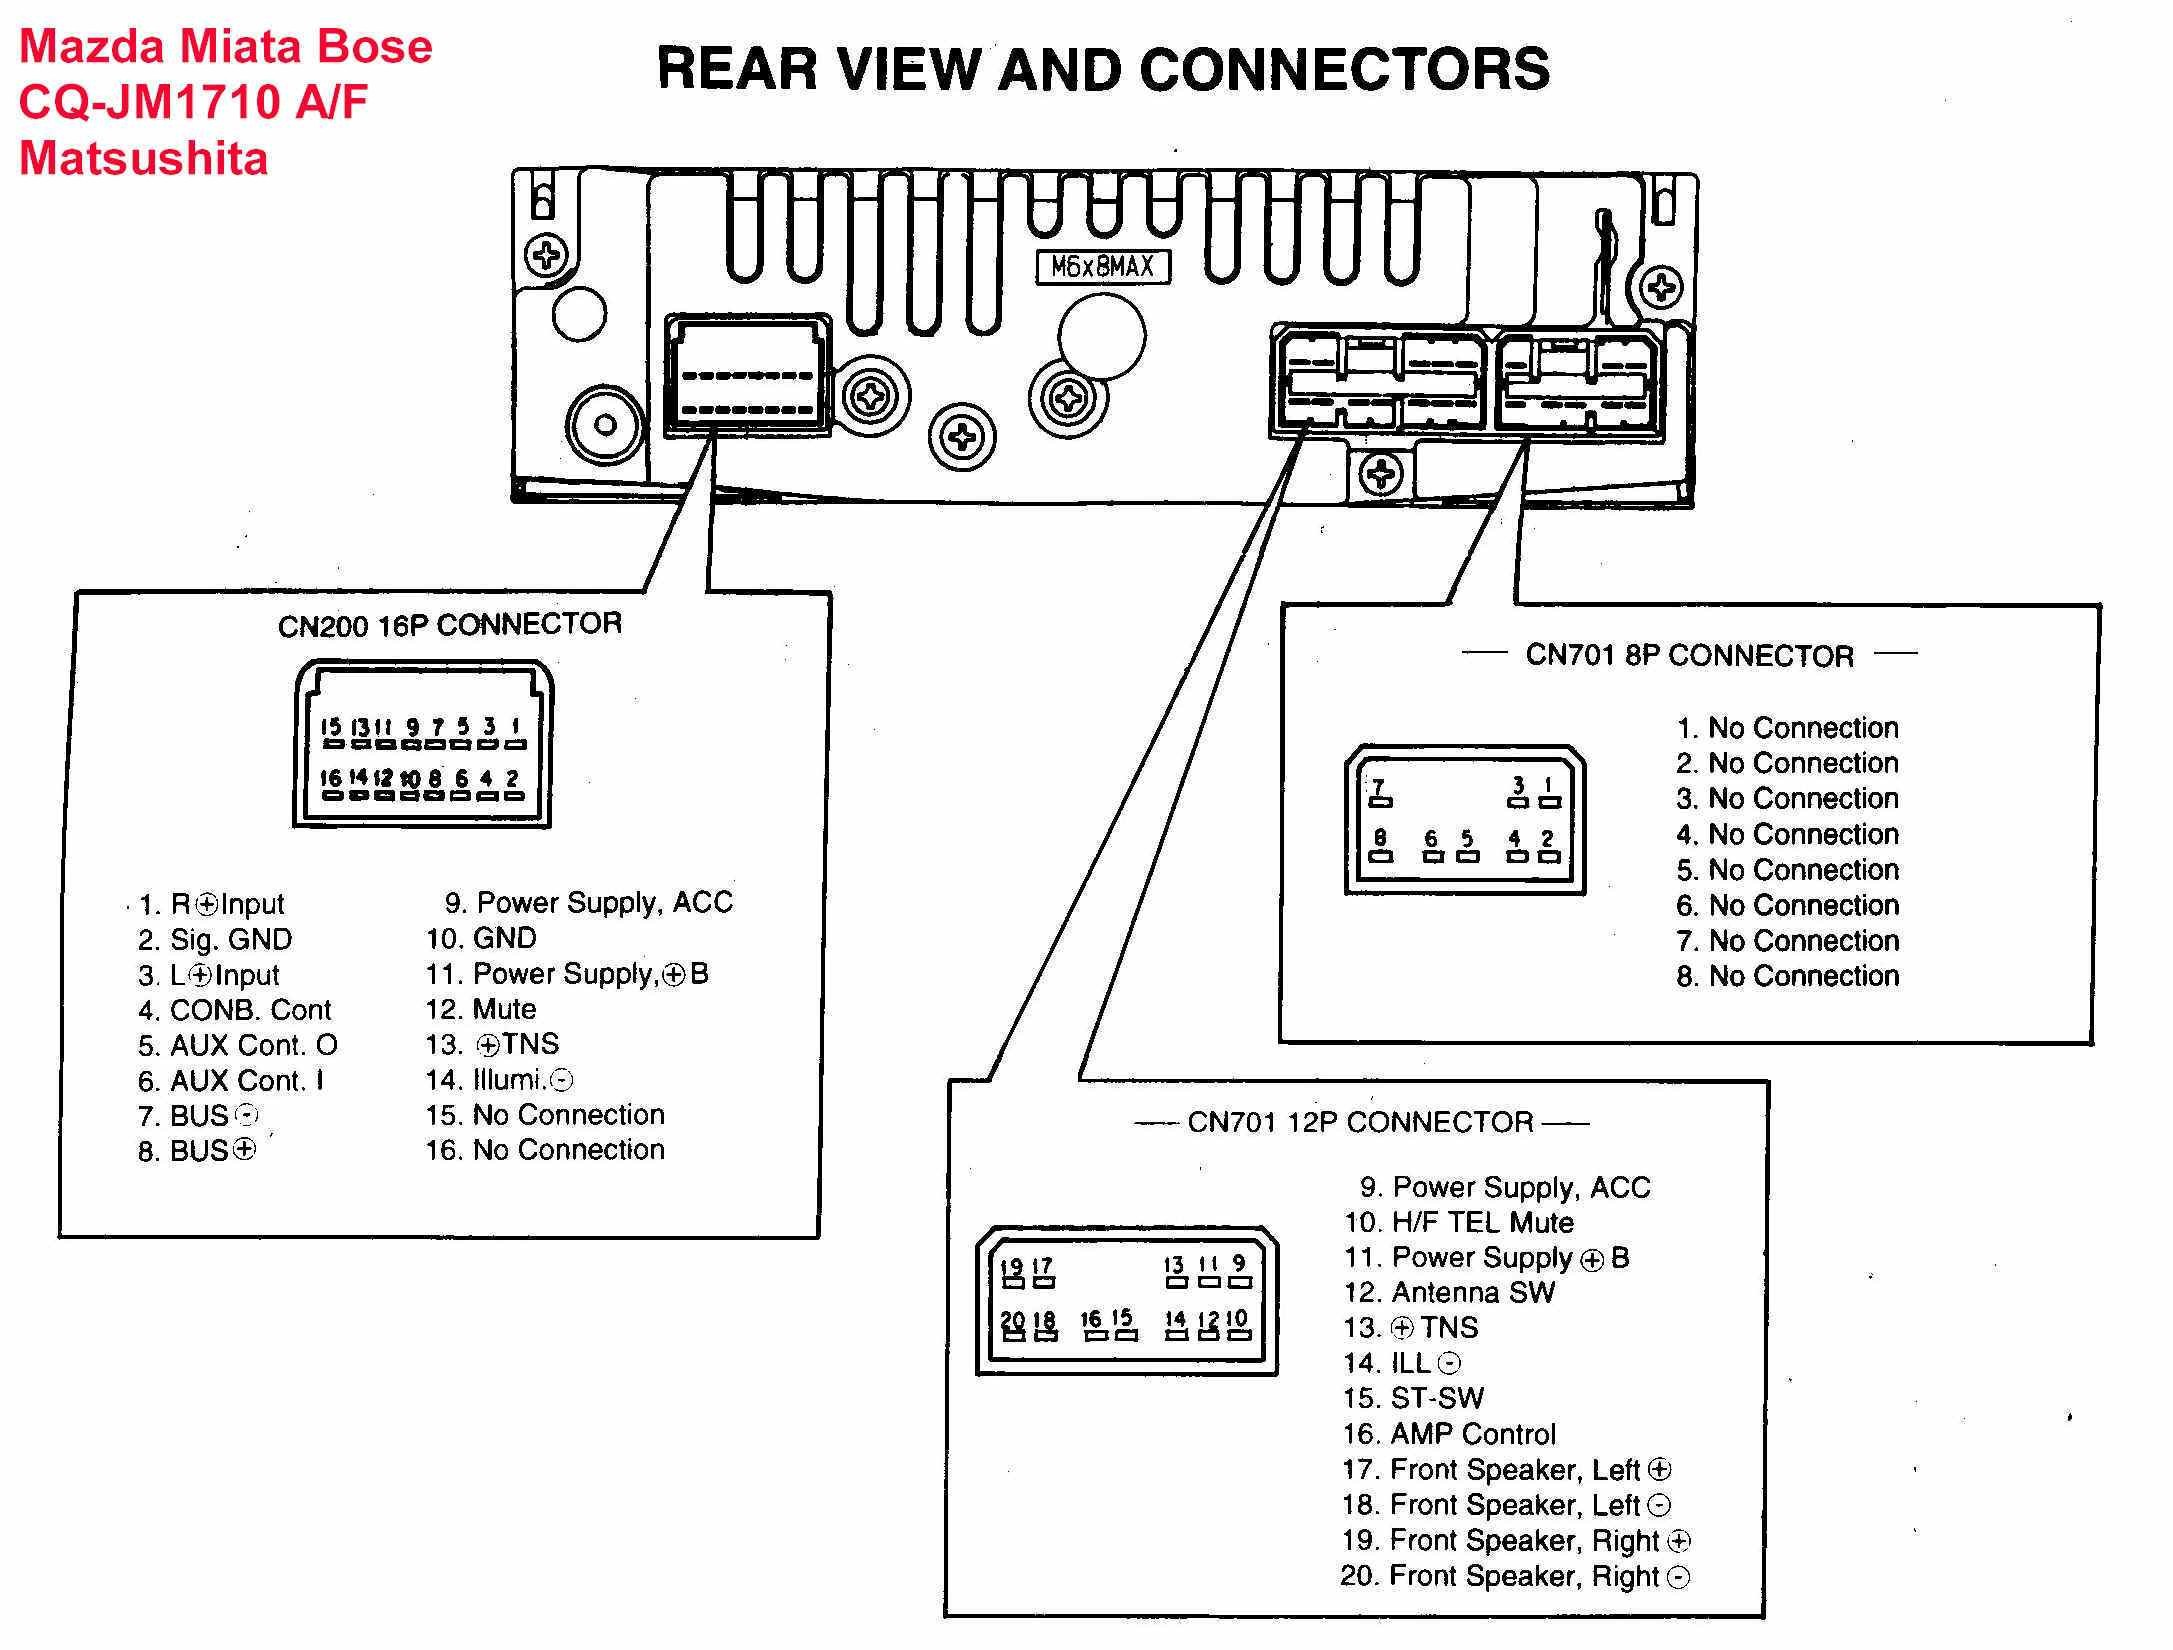 [SCHEMATICS_4UK]  93DE Boss Rt3 Wiring Diagram 2007 Chevy | Wiring Library | Boss Rt3 Wiring Diagram 2007 Chevy |  | Wiring Library